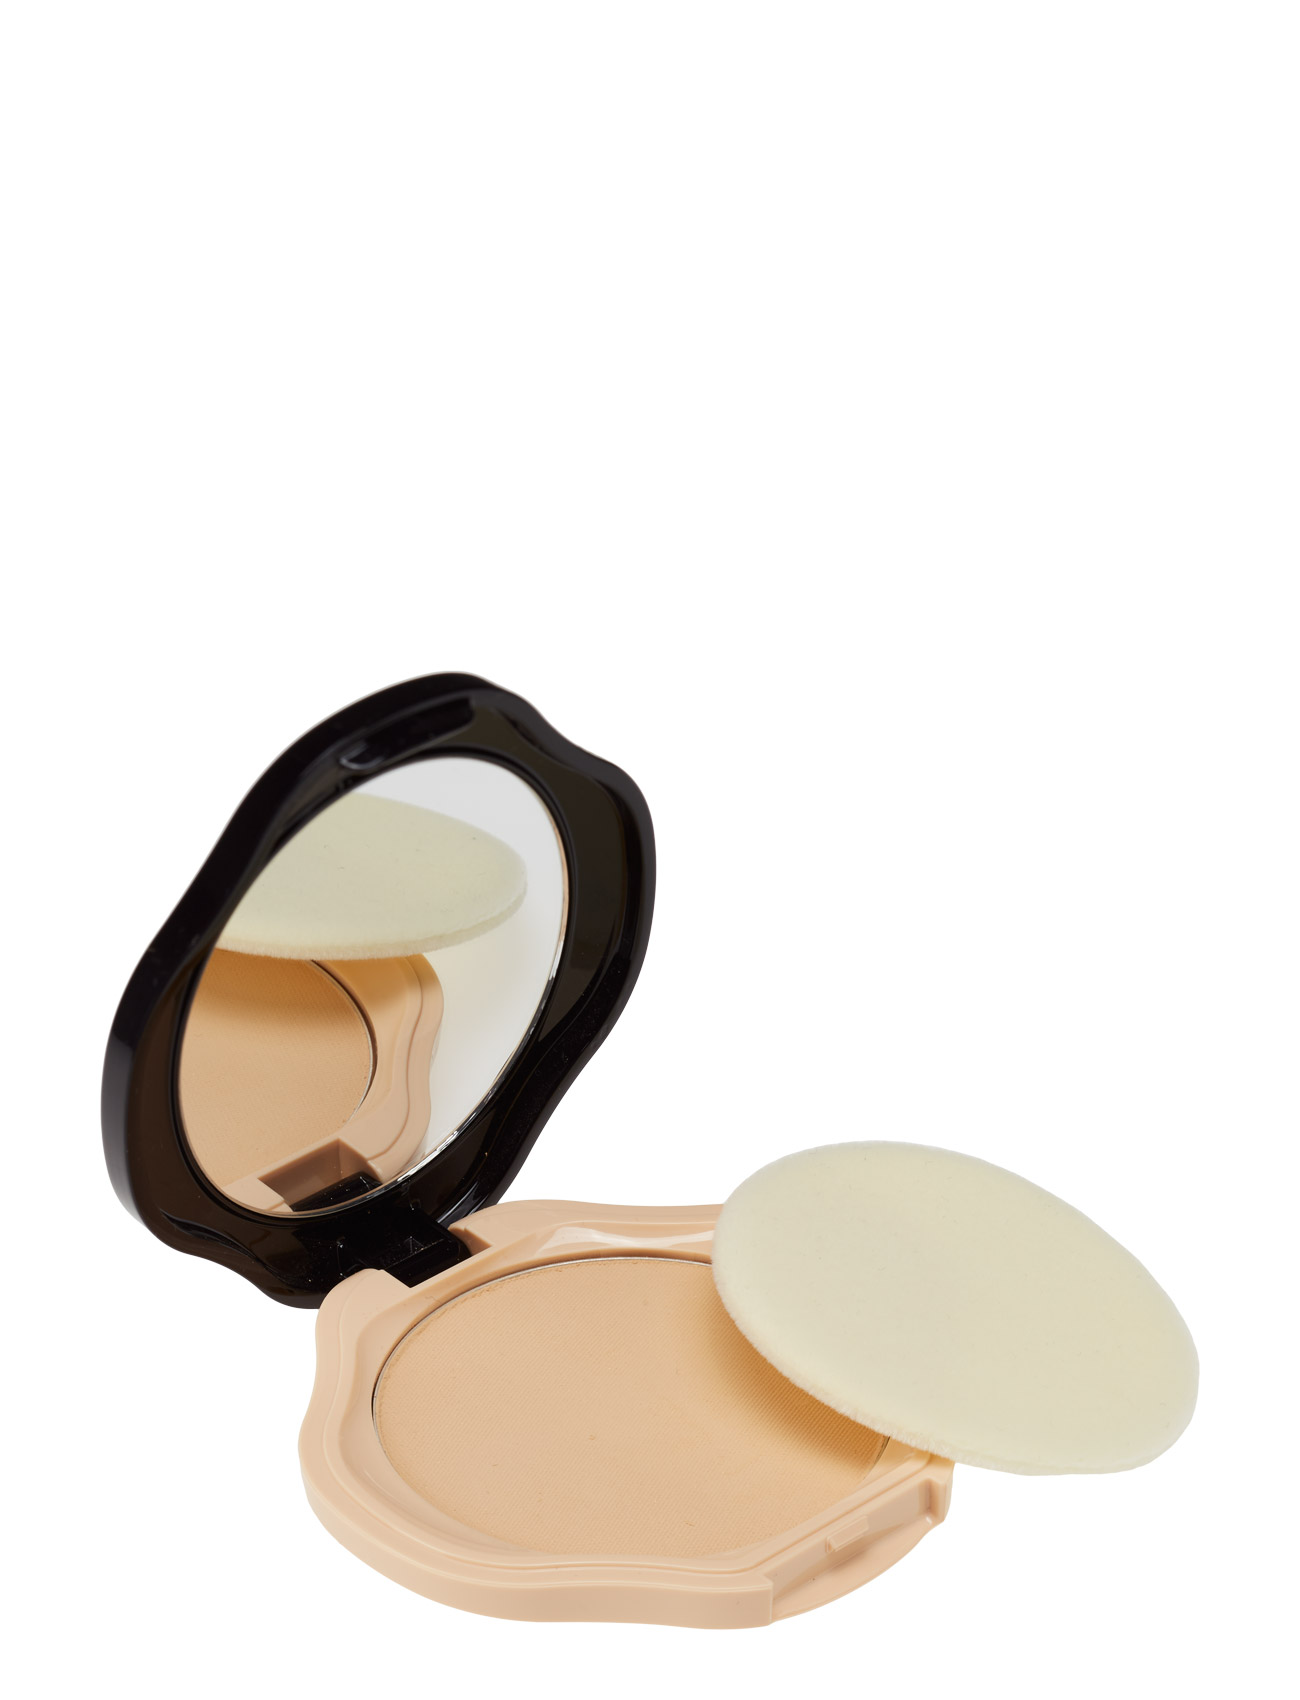 shiseido – Shiseido sheer&perfect foundation b på boozt.com dk